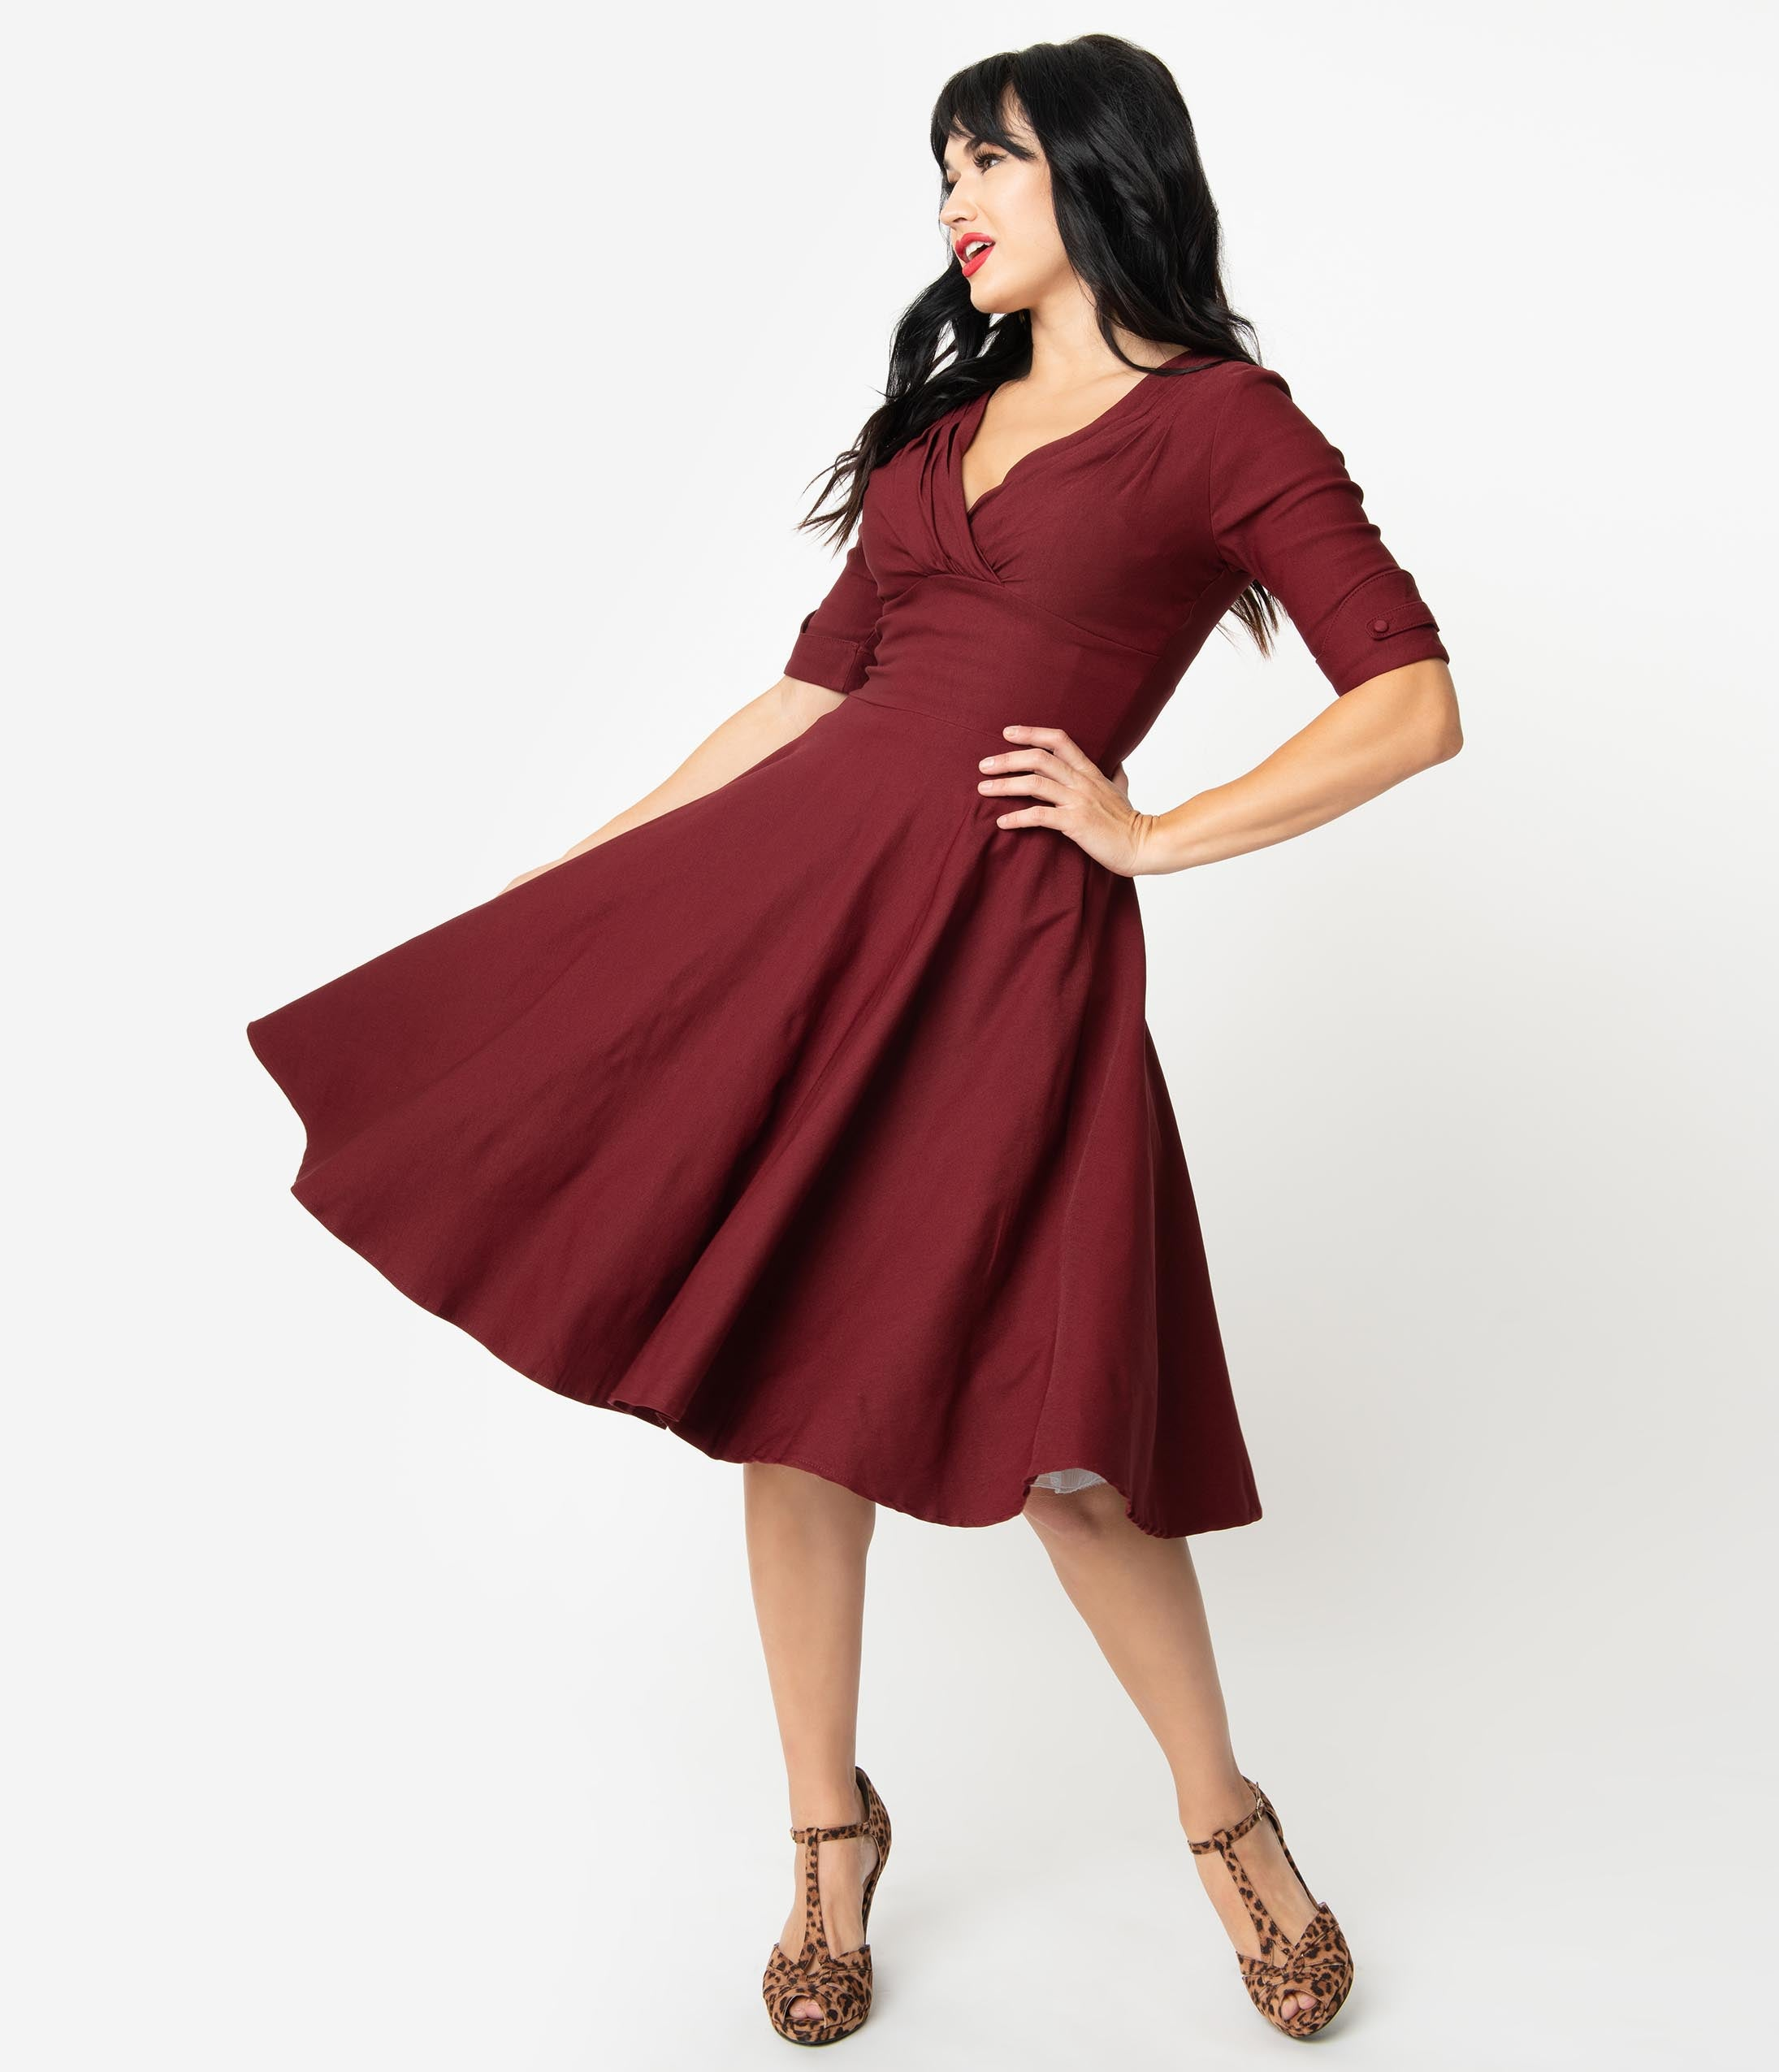 500 Vintage Style Dresses for Sale | Vintage Inspired Dresses Unique Vintage 1950S Burgundy Red Delores Swing Dress With Sleeves $88.00 AT vintagedancer.com